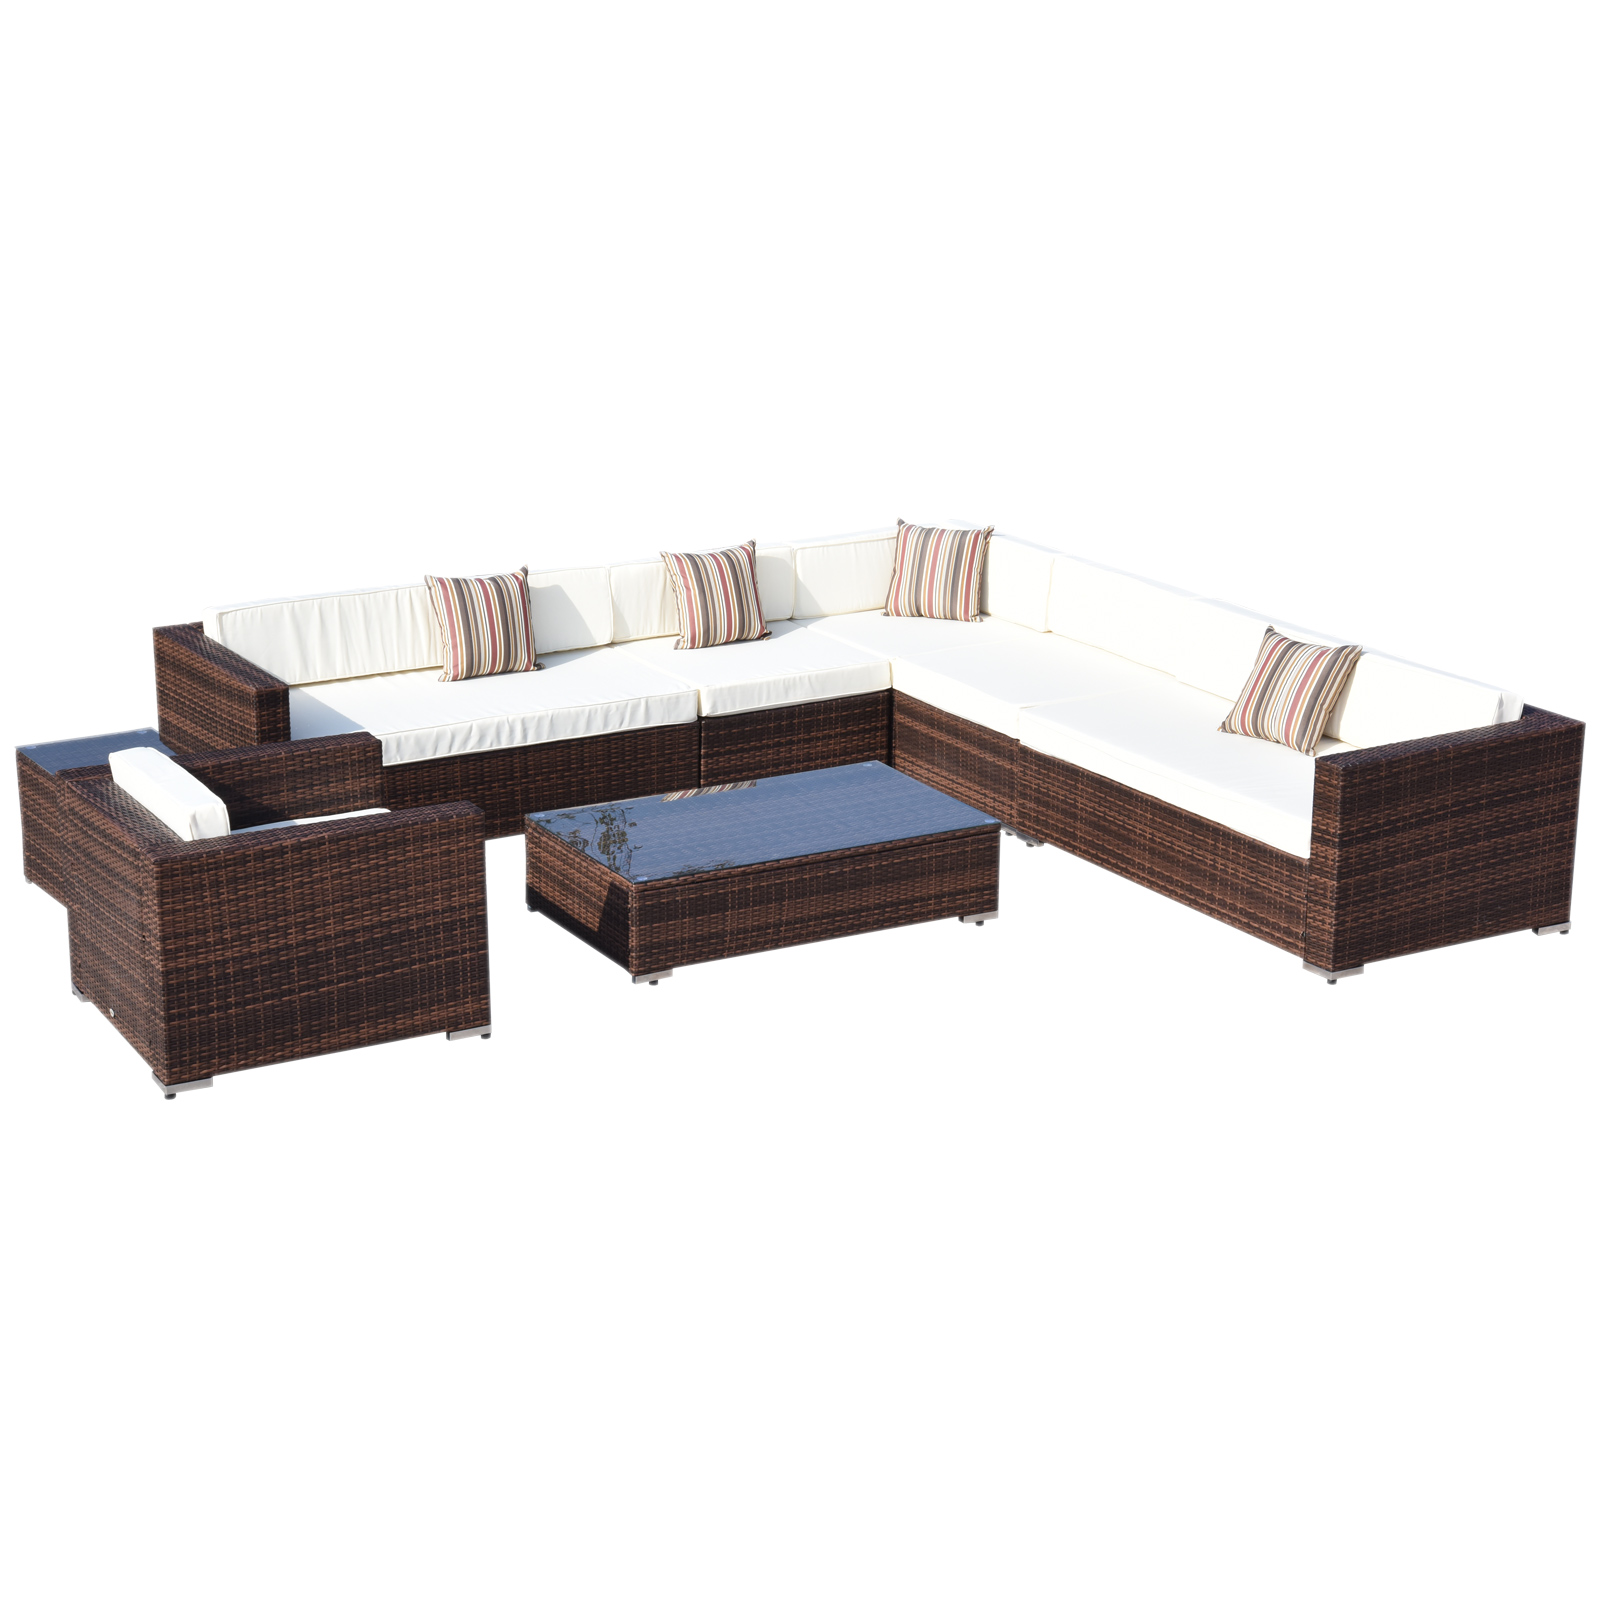 Outsunny Set 8 PCs Lounge Aluminum Frame Garden Living Room Furniture Poly Rattan Coffee Brown